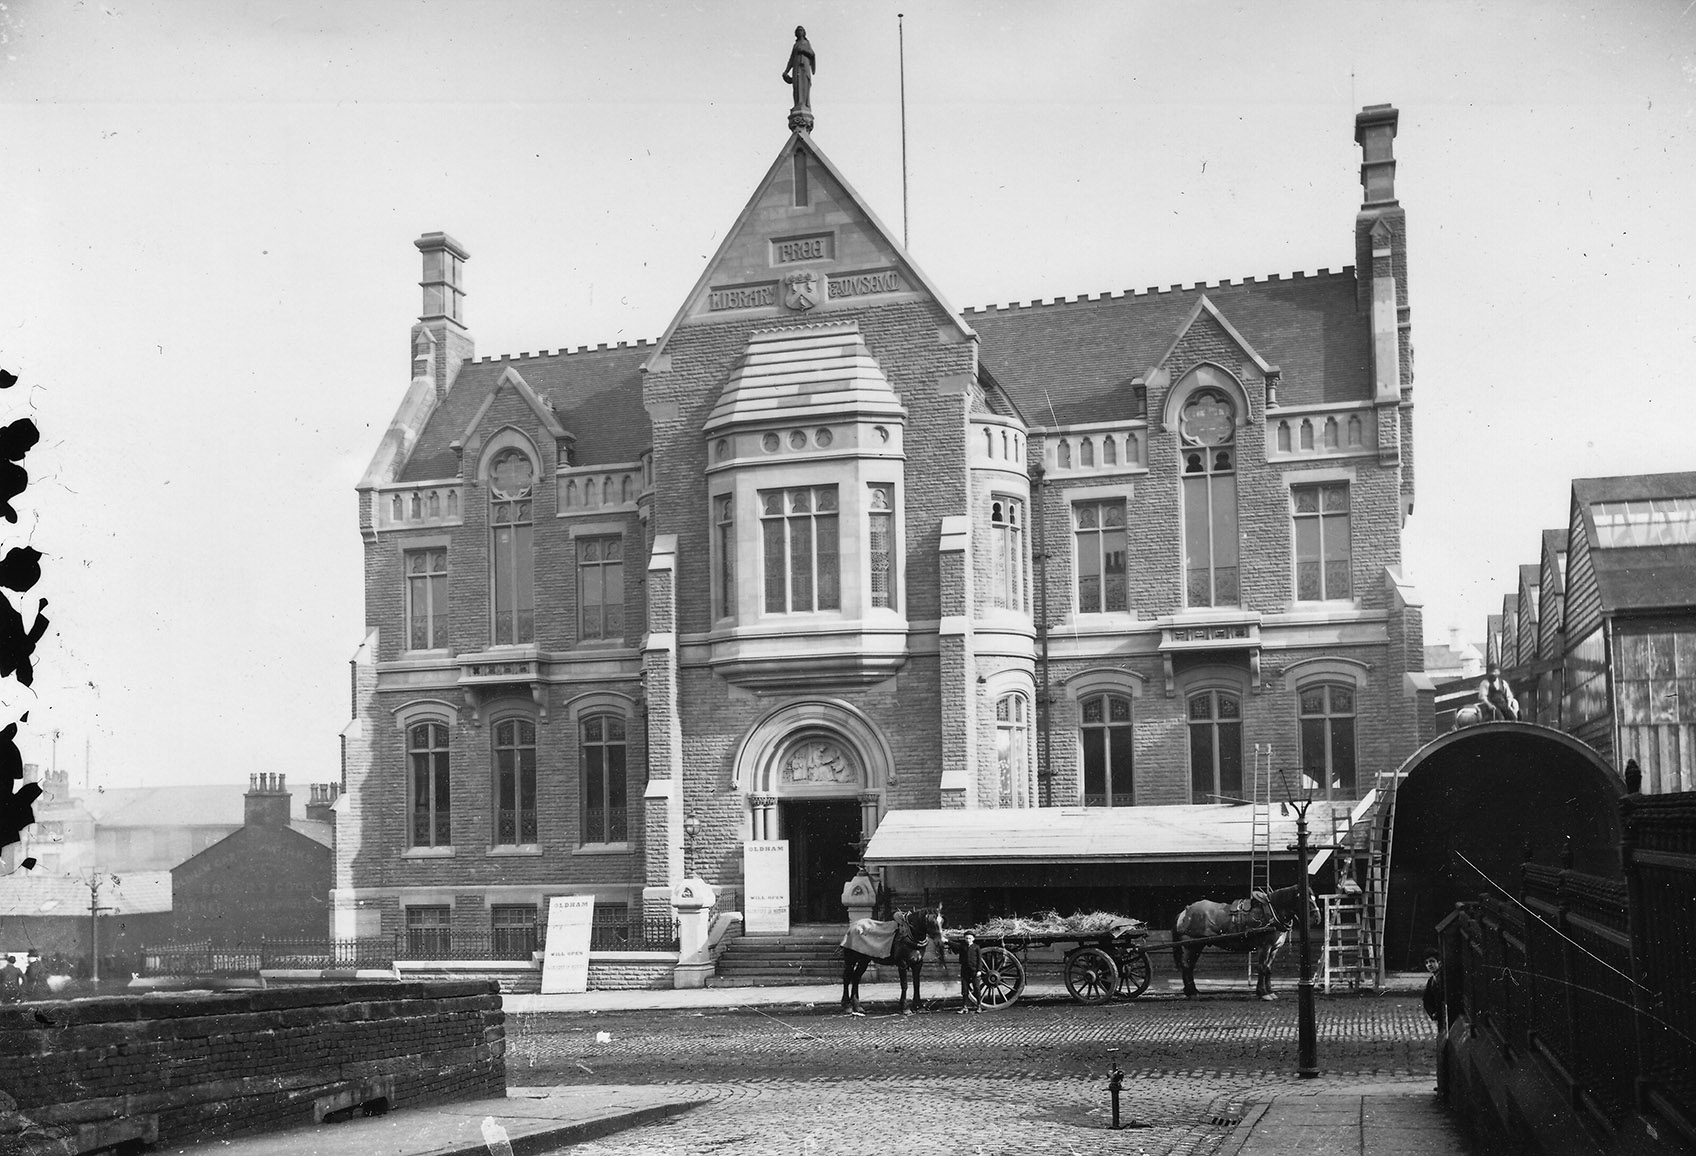 The finishing touches being put to the building just prior to opening in 1883